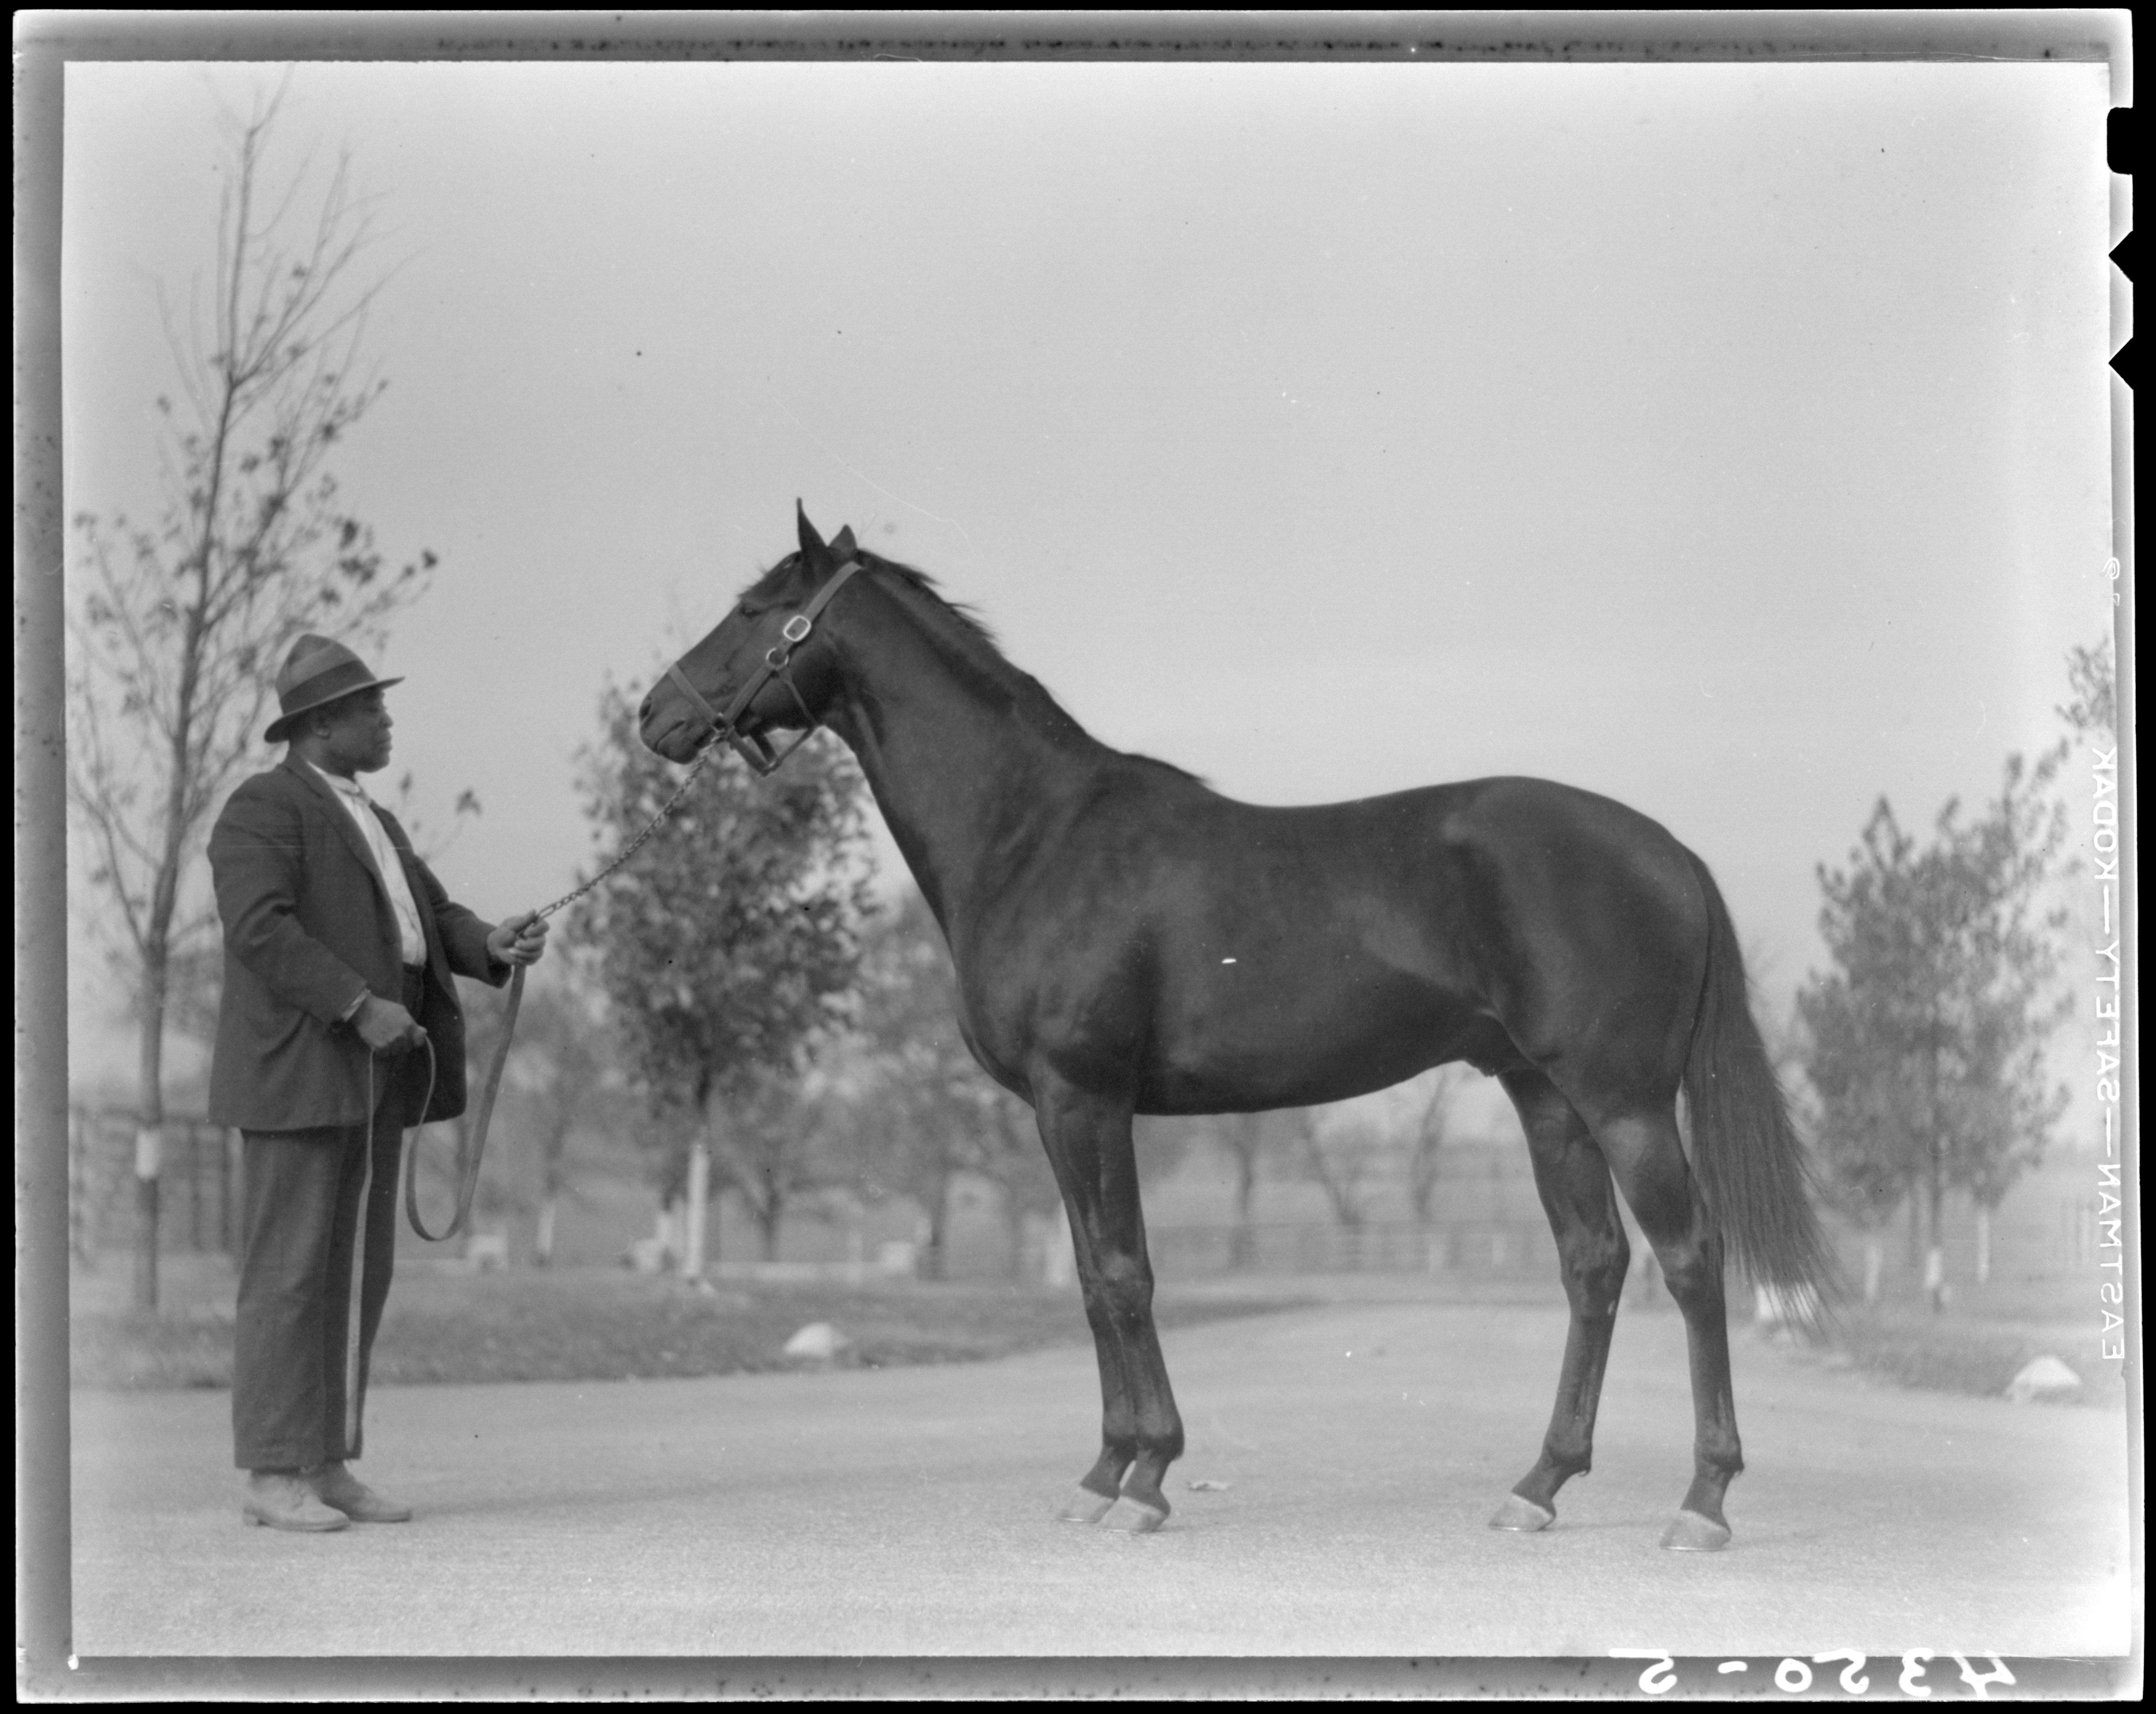 War Admiral 4th Triple Crown Winner In U. S. History. His Sire Man 'O War Has Bred 3x3 To St. Simon Sire! Dam Also Has St. Simon In Her Pedigree.